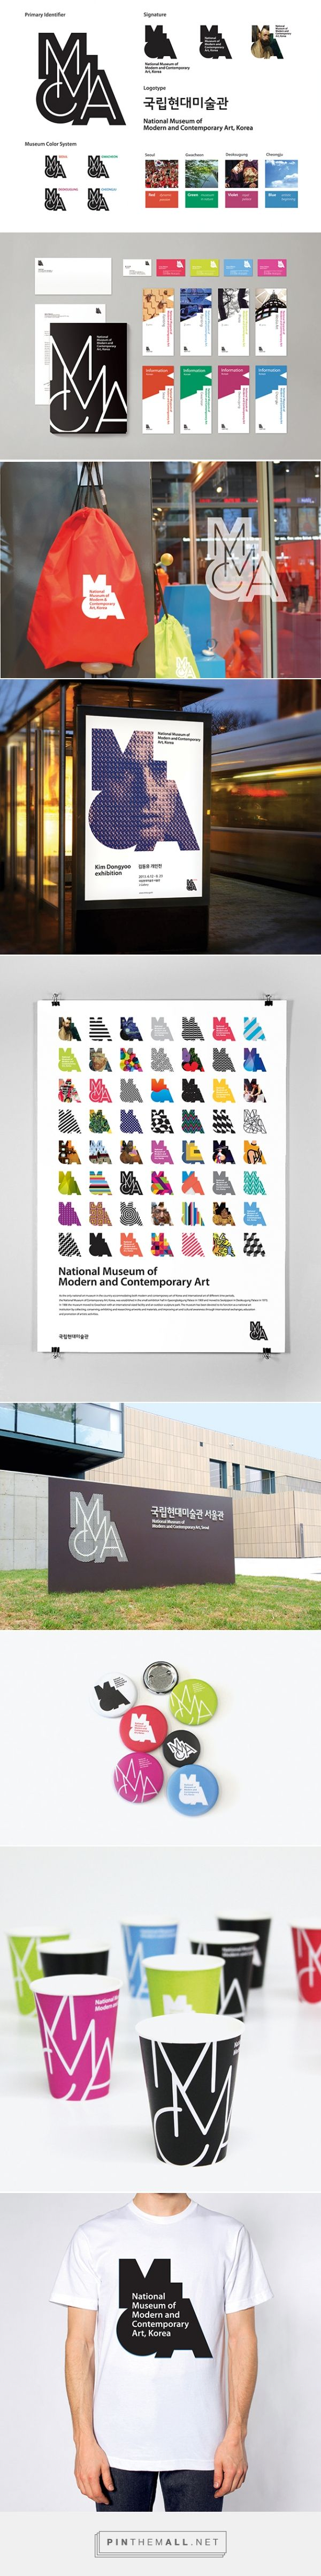 MMCA (National Museum of Modern and Contemporary Art, Korea) - 2013 | By Infinite, Seoul http://www.infinite.co.kr   A wide colour spectrum in combination with a versatile image language allows it to emotionally appeal to the target group. In visual aspects, the logo amplifies the sense of space and three-dimensionality through irregular shapes and expresses the future of the MMCA as a multi-cultural place. The museum identity aims to enable communication locally as well as globally.